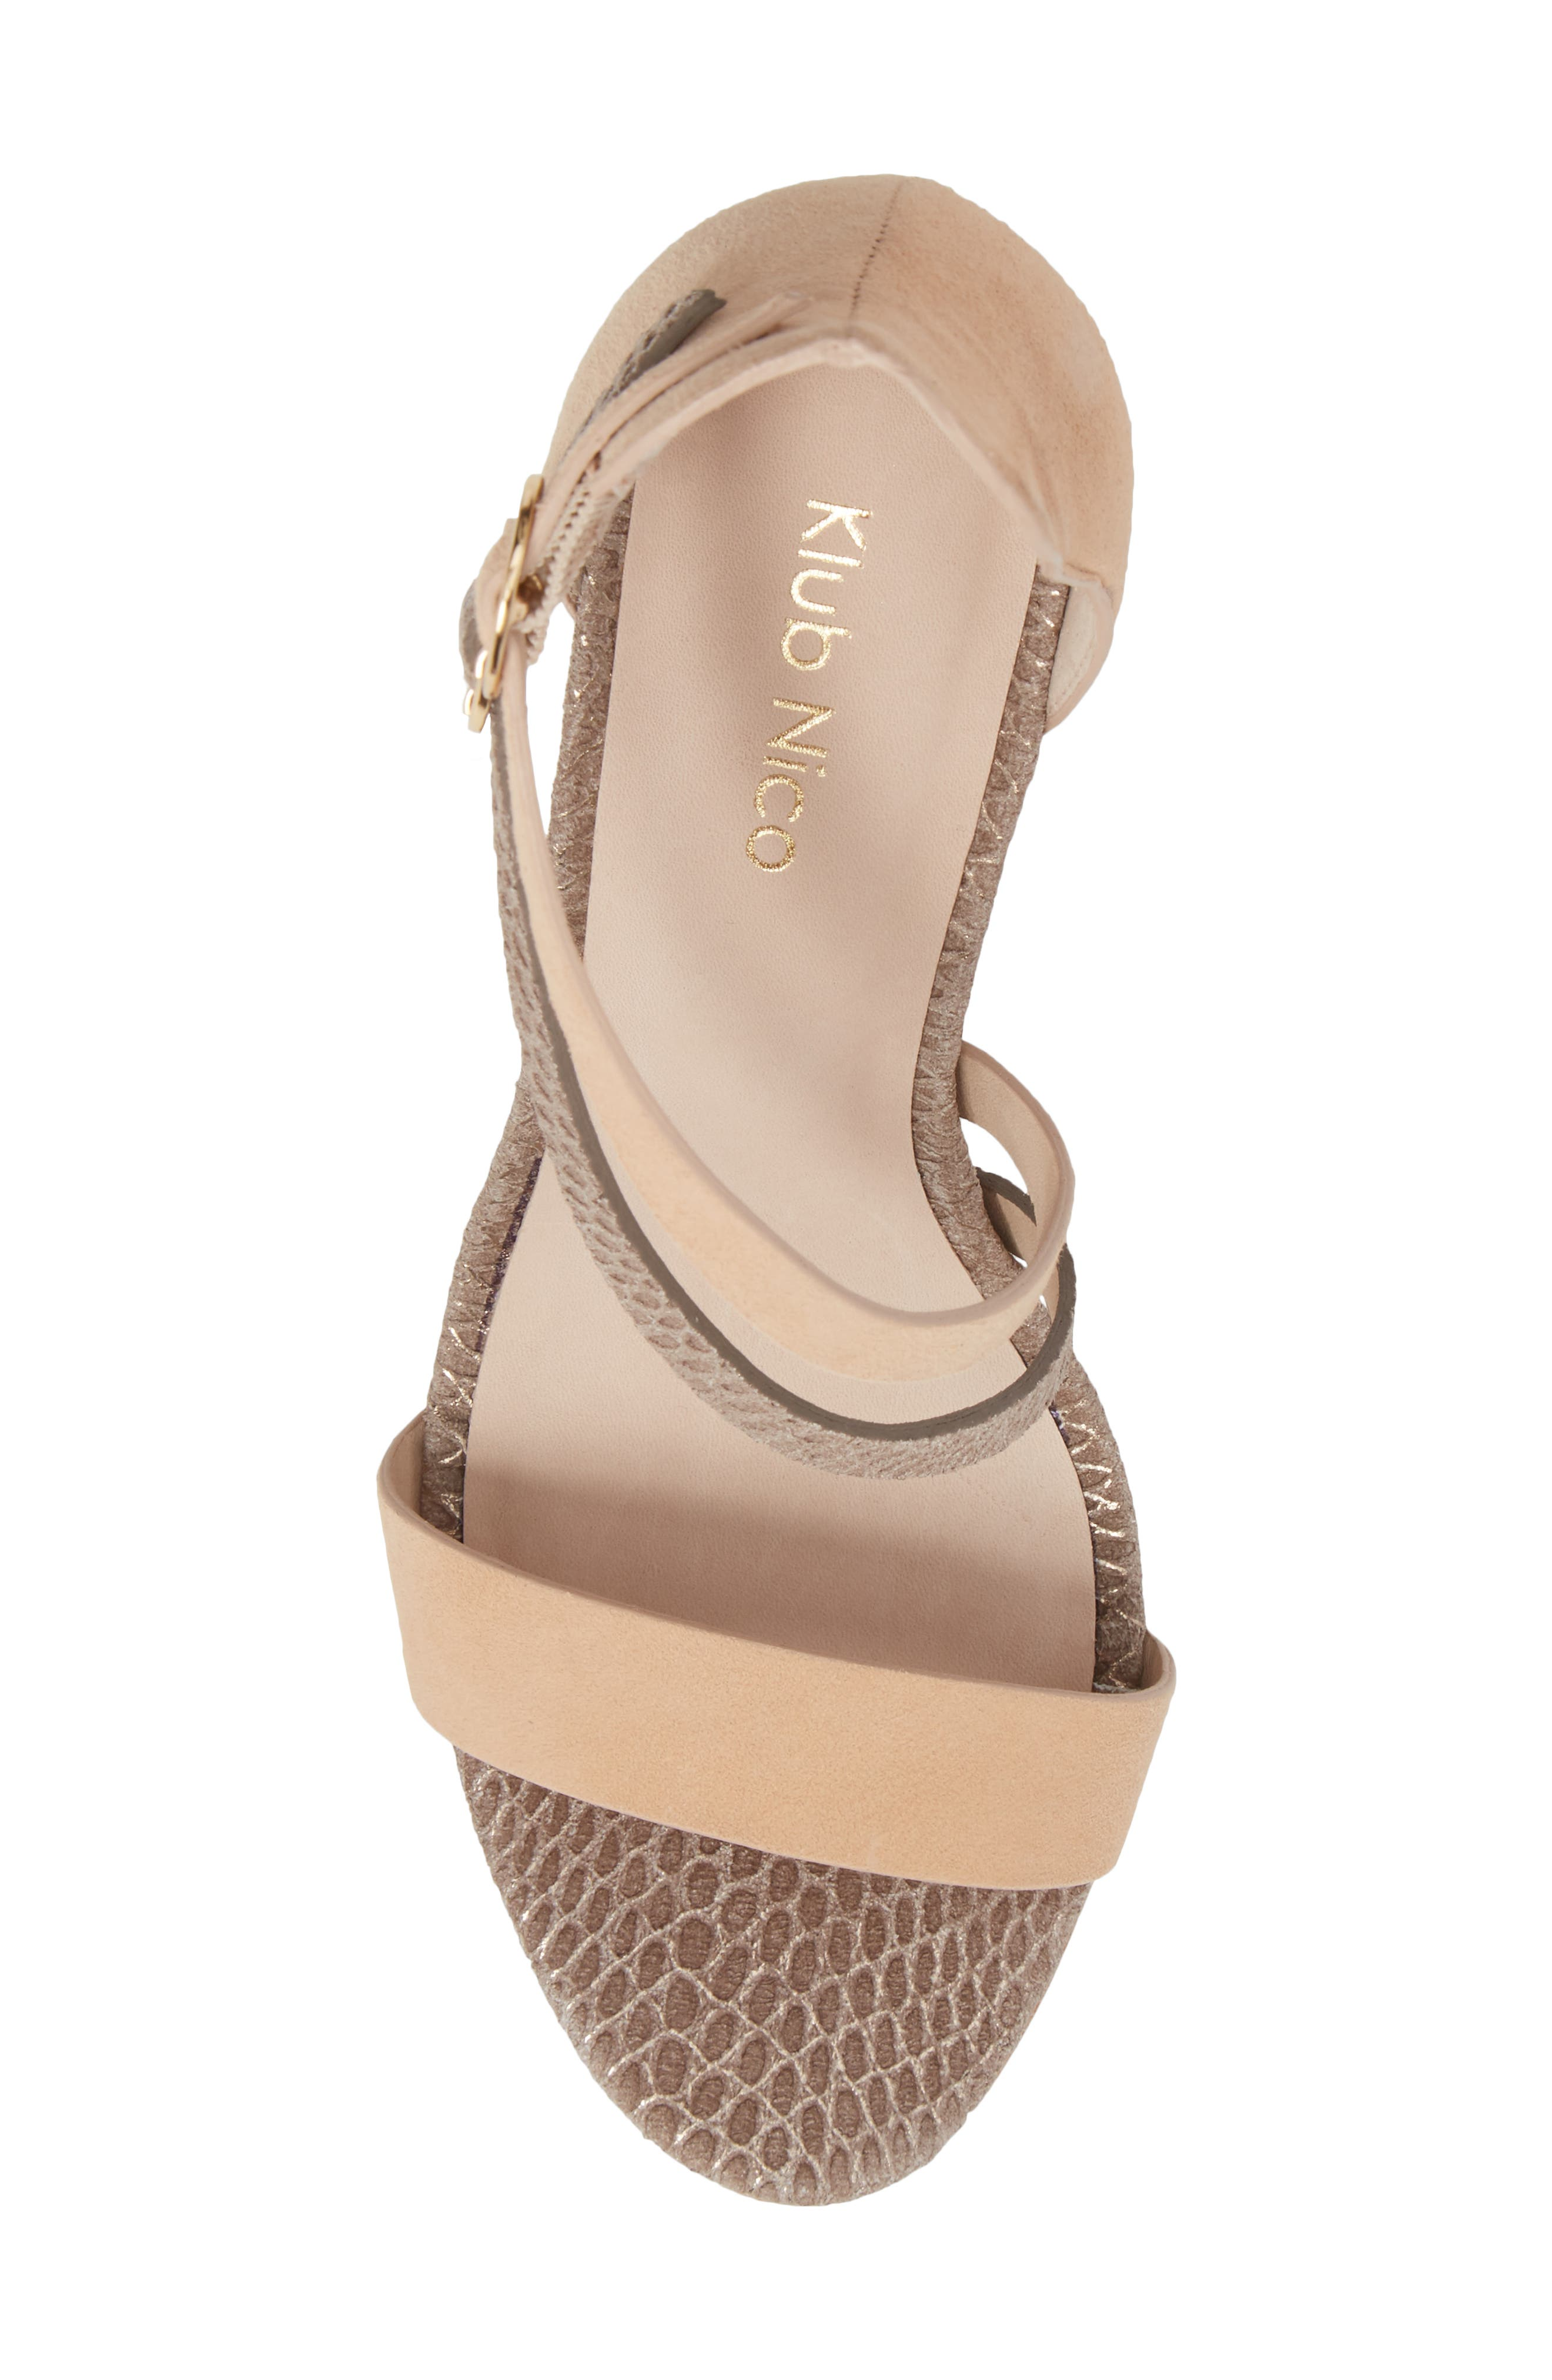 Arden Sandal,                             Alternate thumbnail 5, color,                             PEONY/ PEWTER EMBOSSED LEATHER